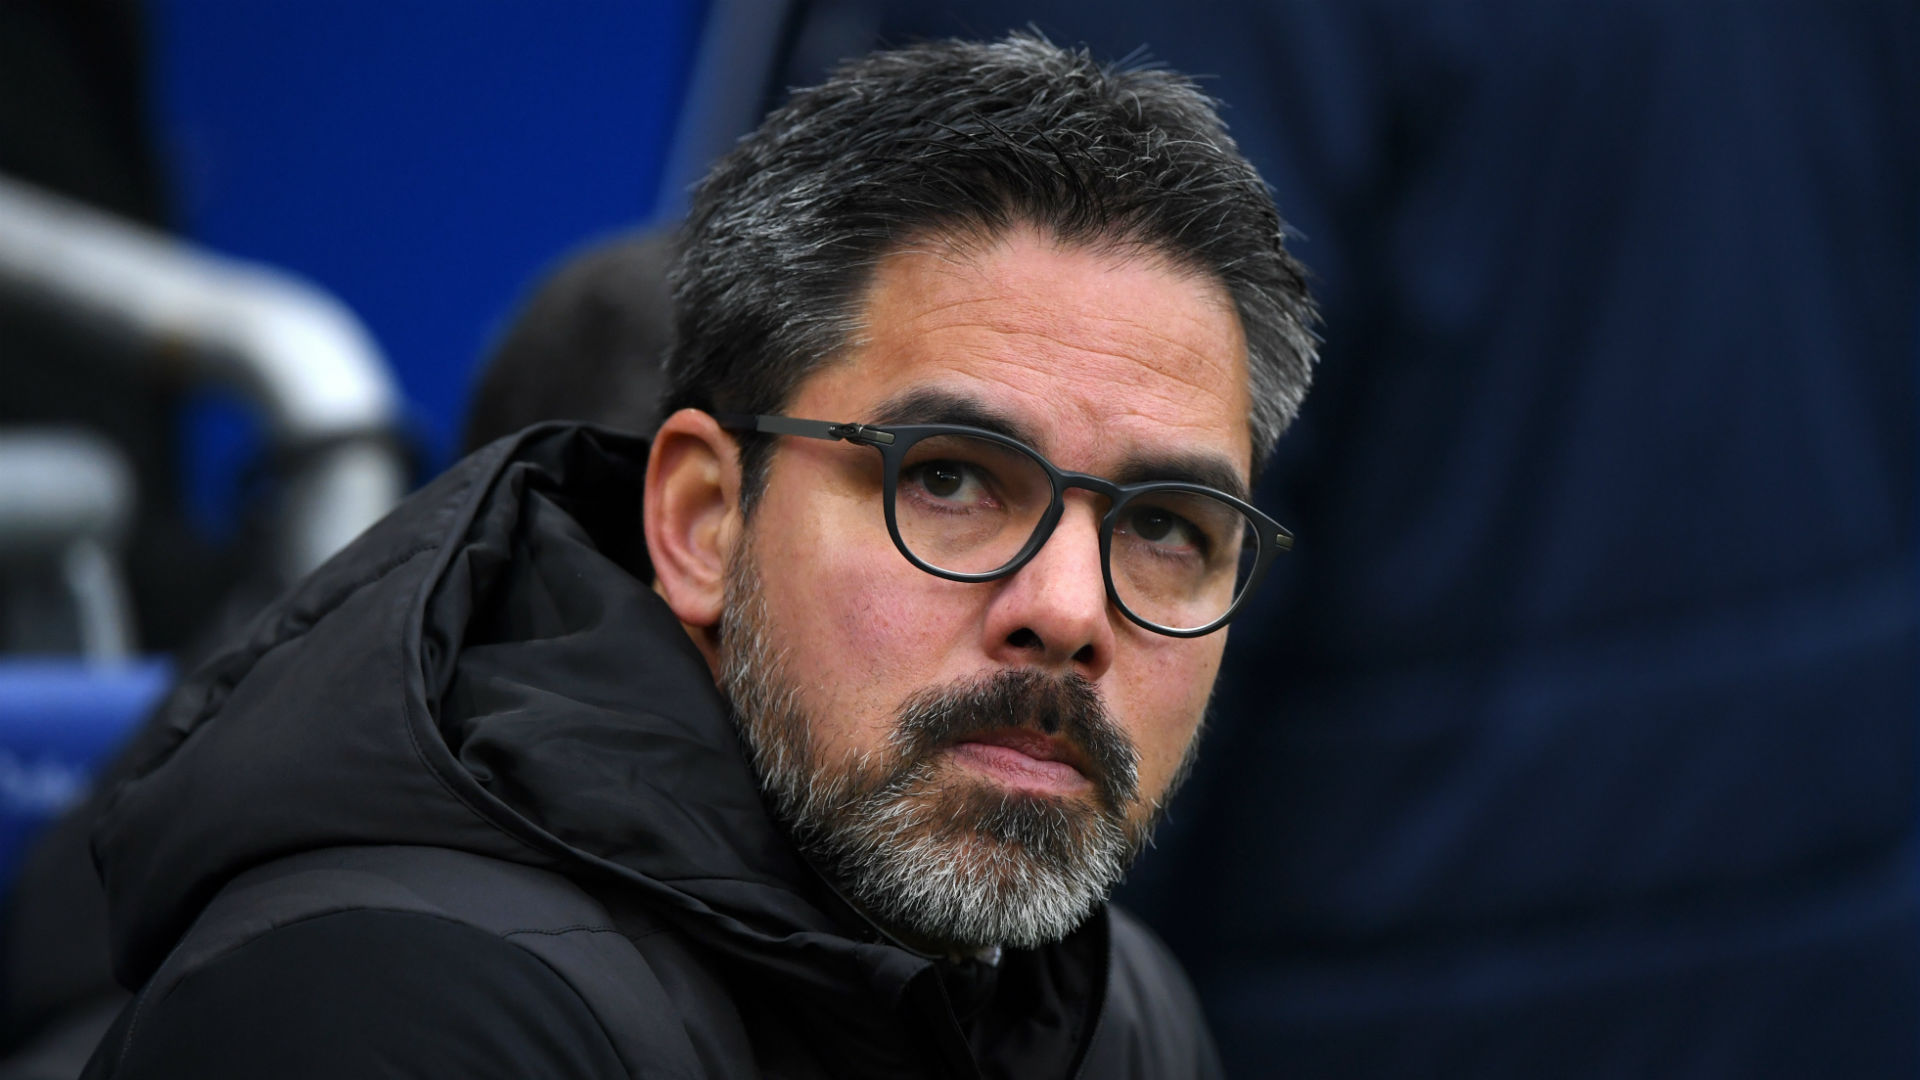 Schalke announce David Wagner as new head coach from 2019-20